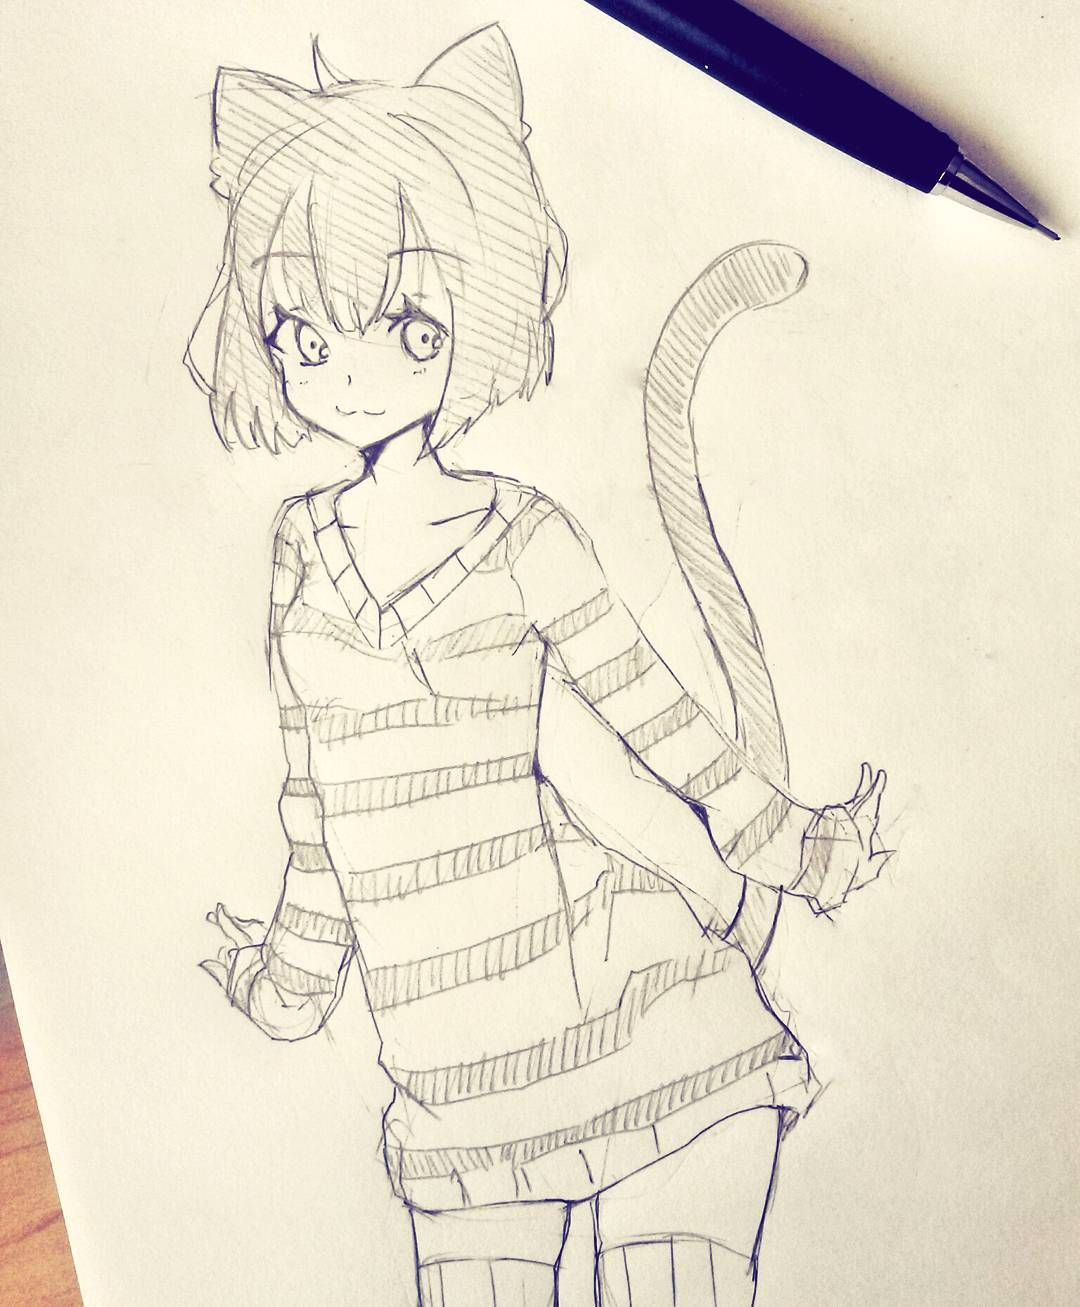 Anime cat girl sketch